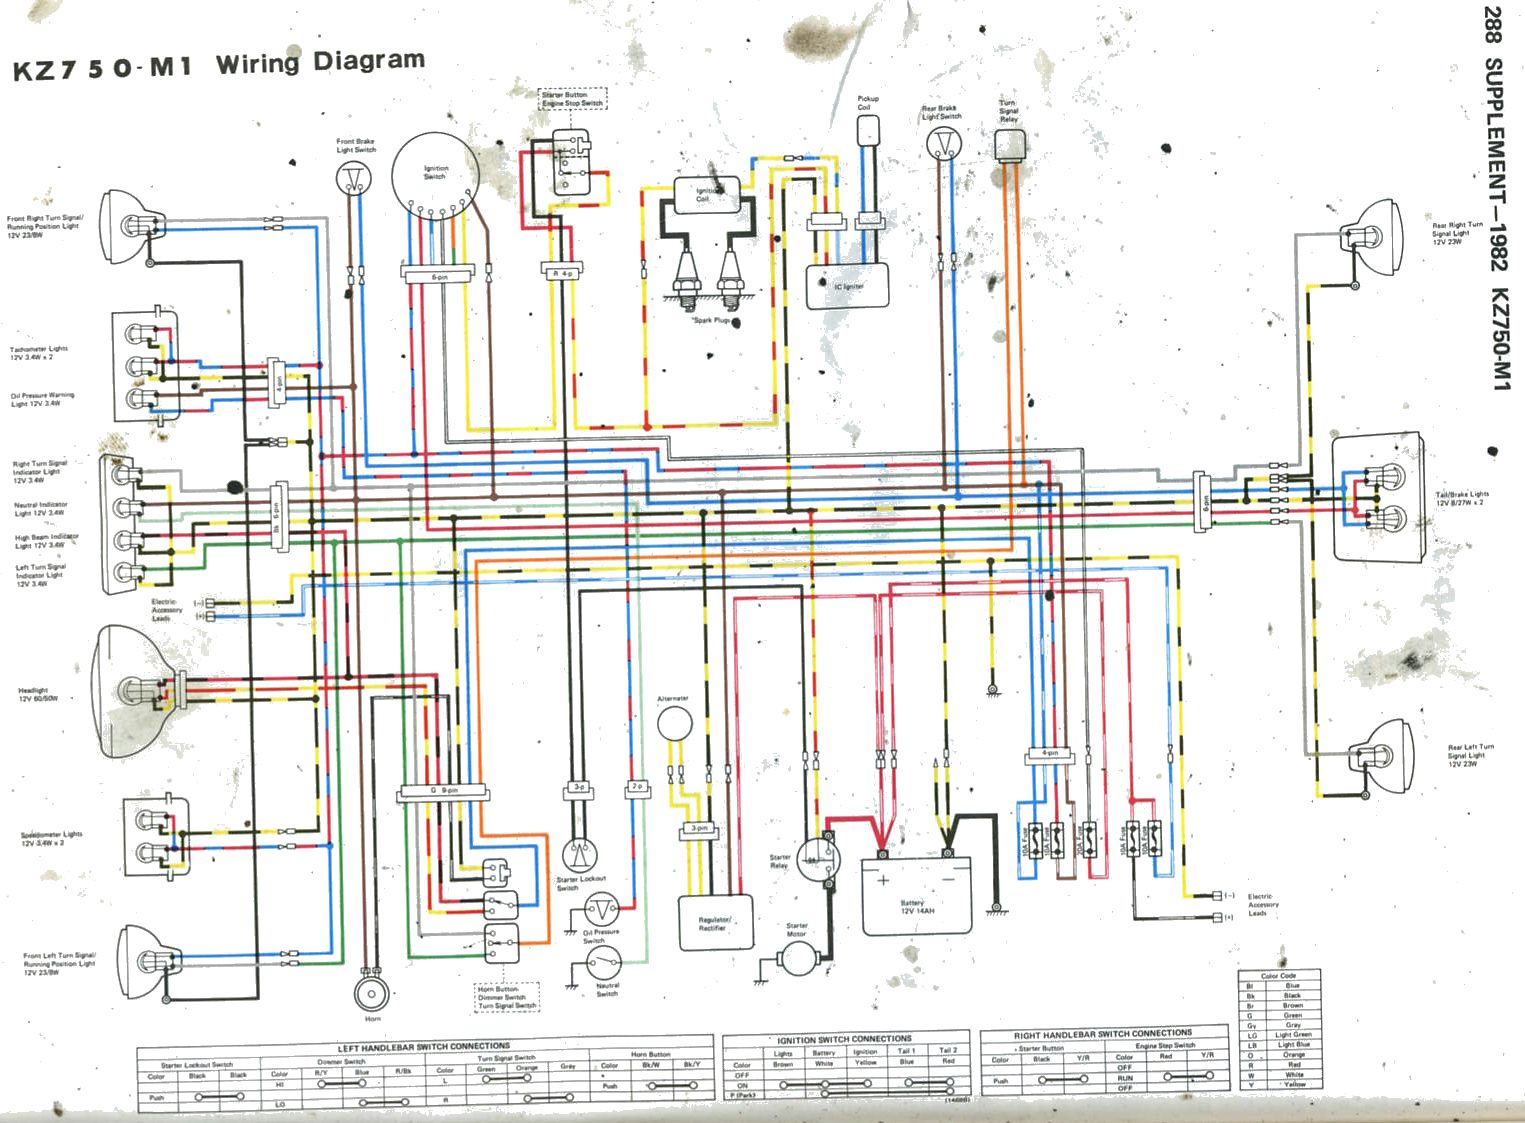 1986 kz1000 wiring diagram 1982 ignition switch wiring kzrider forum kzrider kz z1 z attachments 1977 kawasaki kz1000 wiring diagram